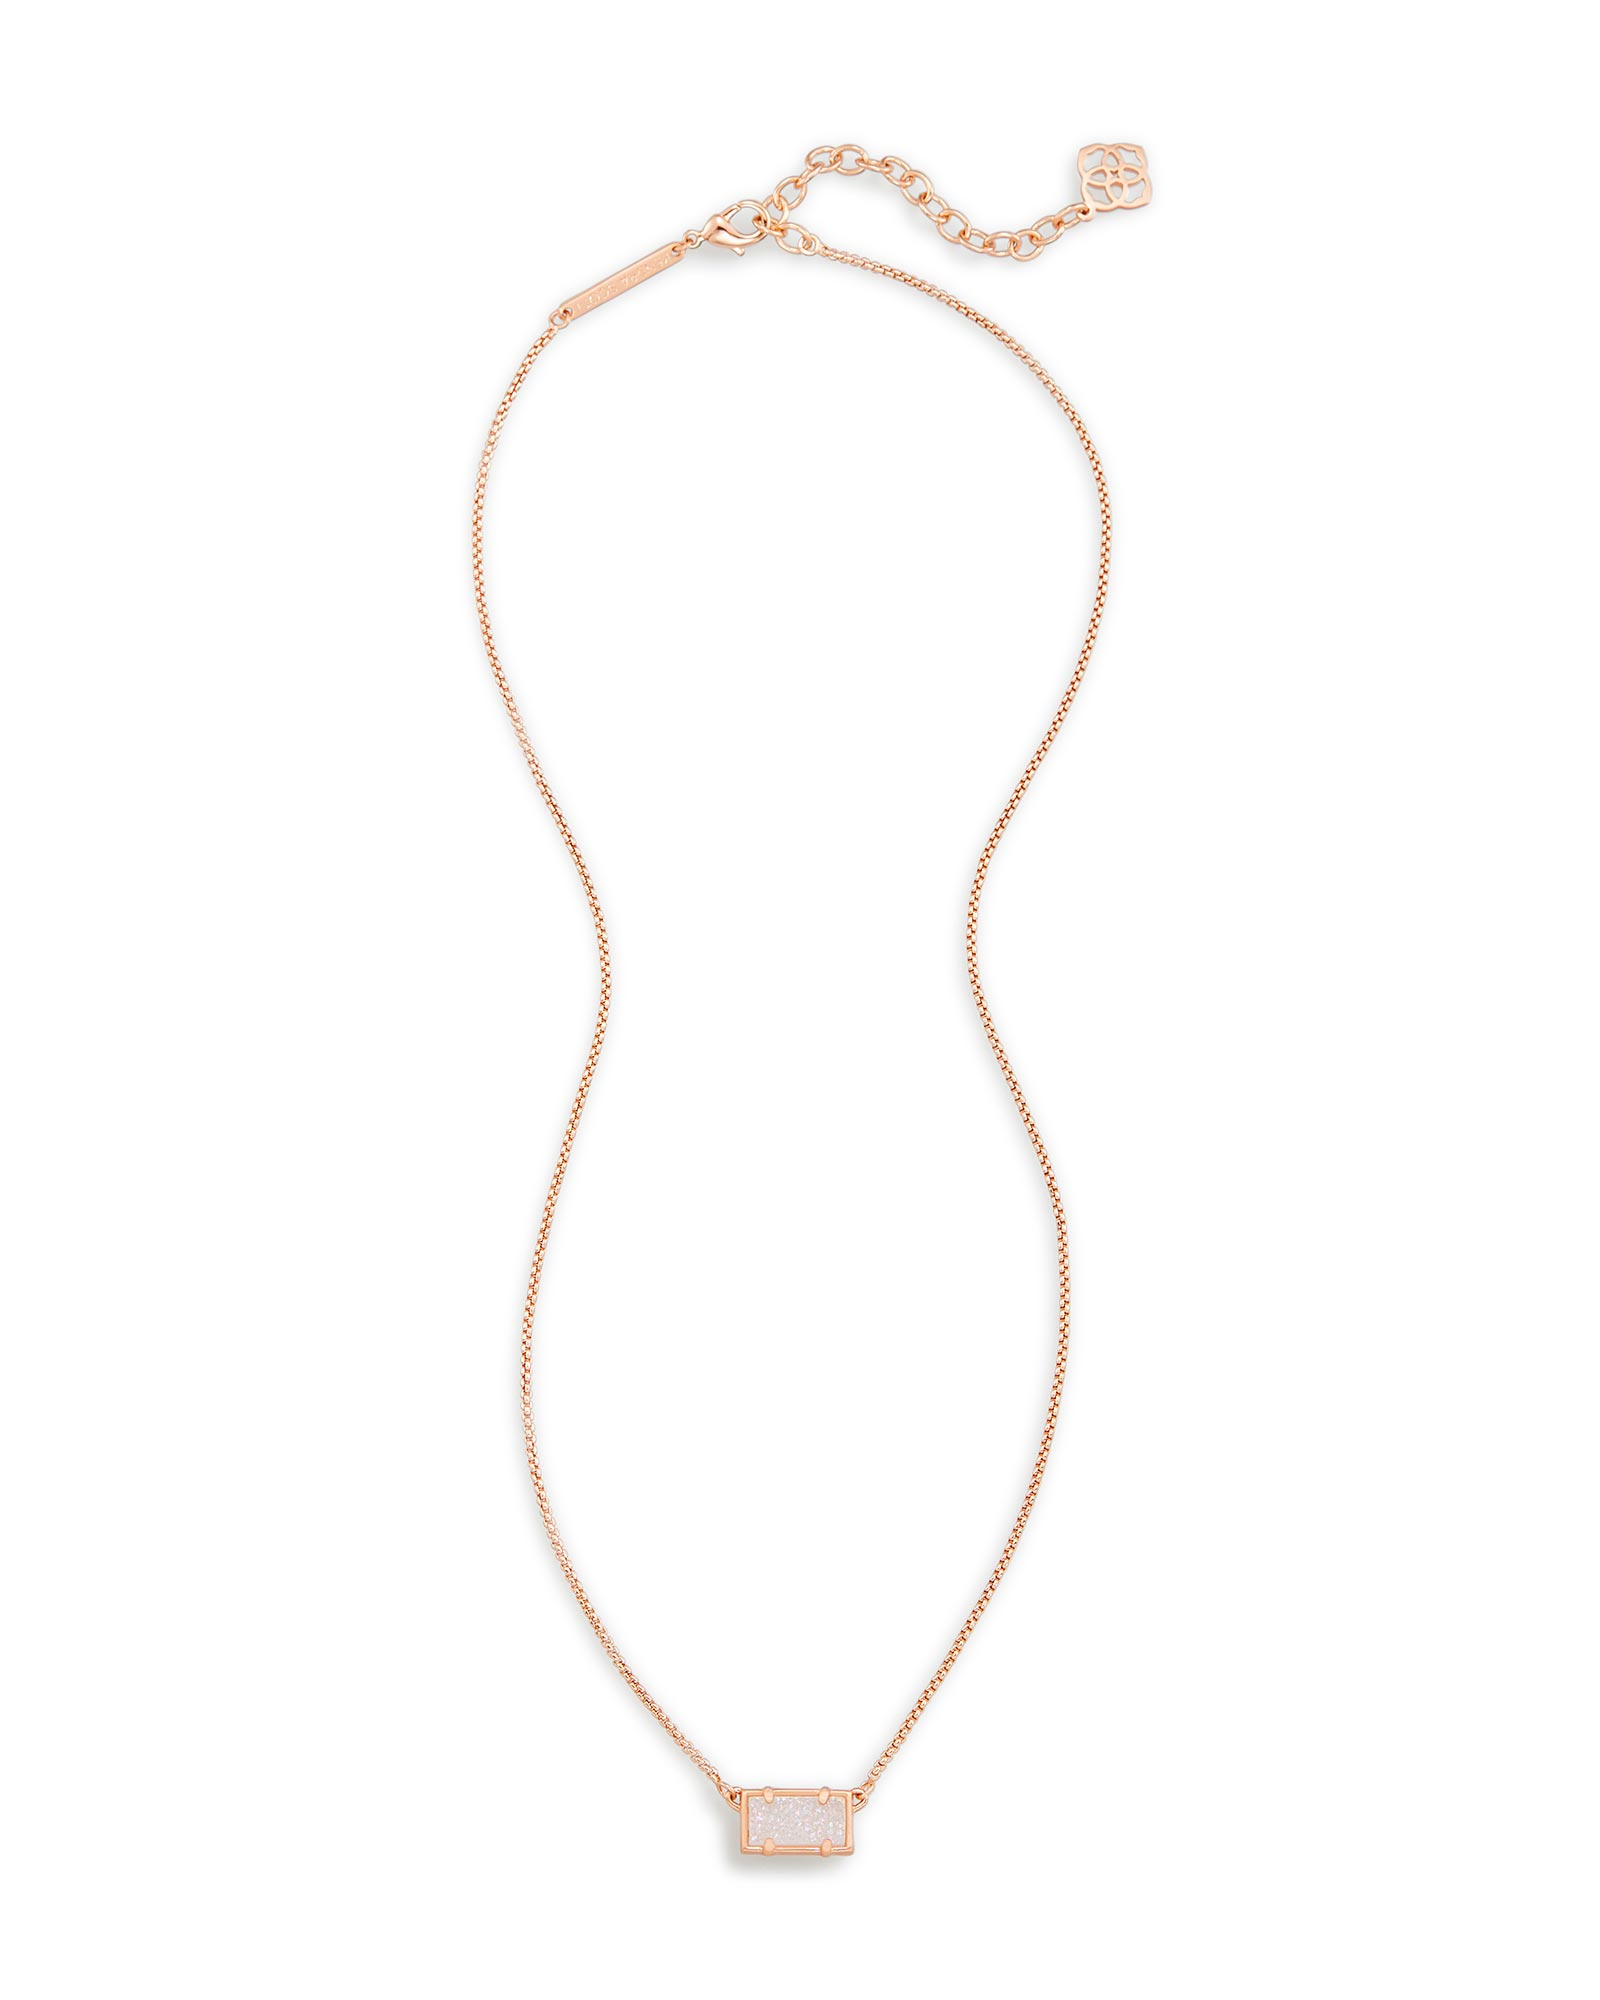 Pattie Rose Gold Pendant Necklace in Drusy Kendra Scott